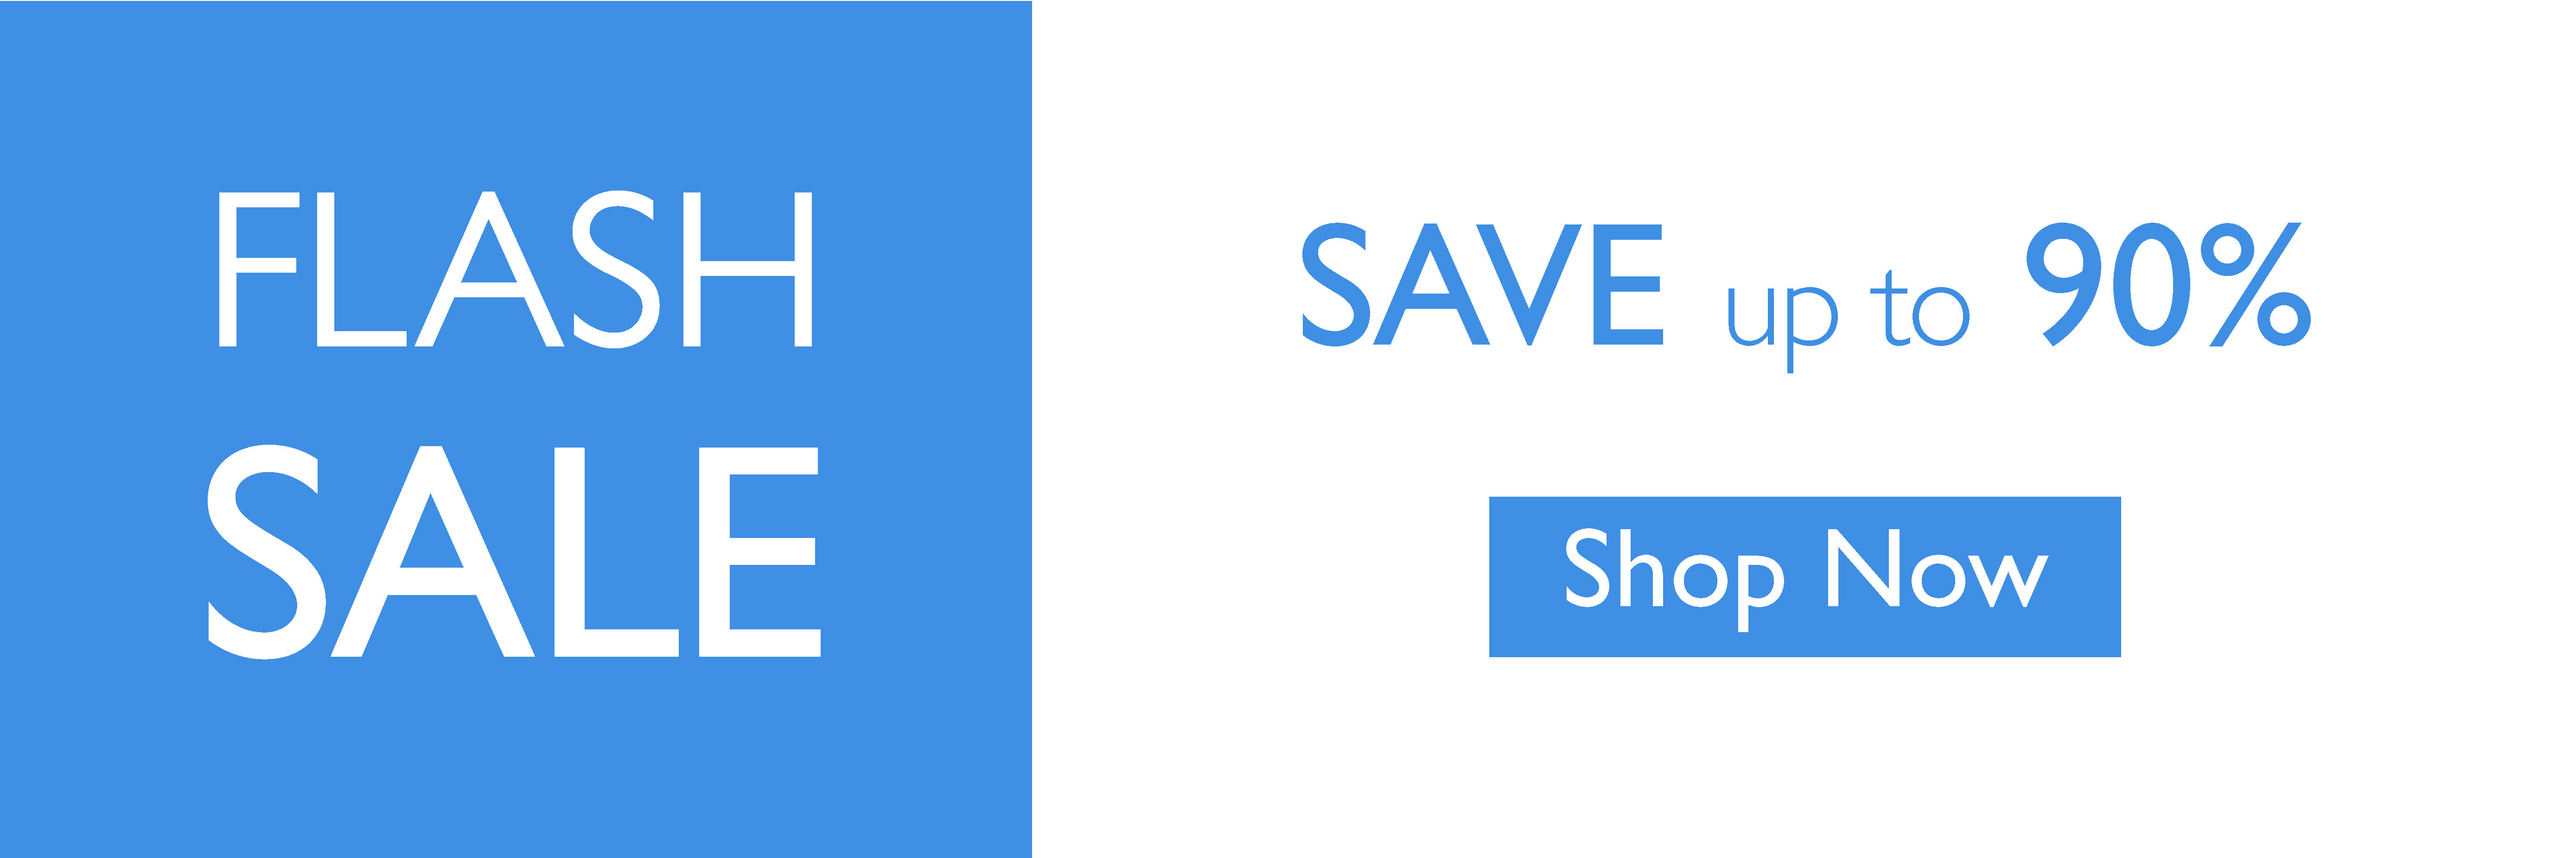 Flash Sale Save up to 90%